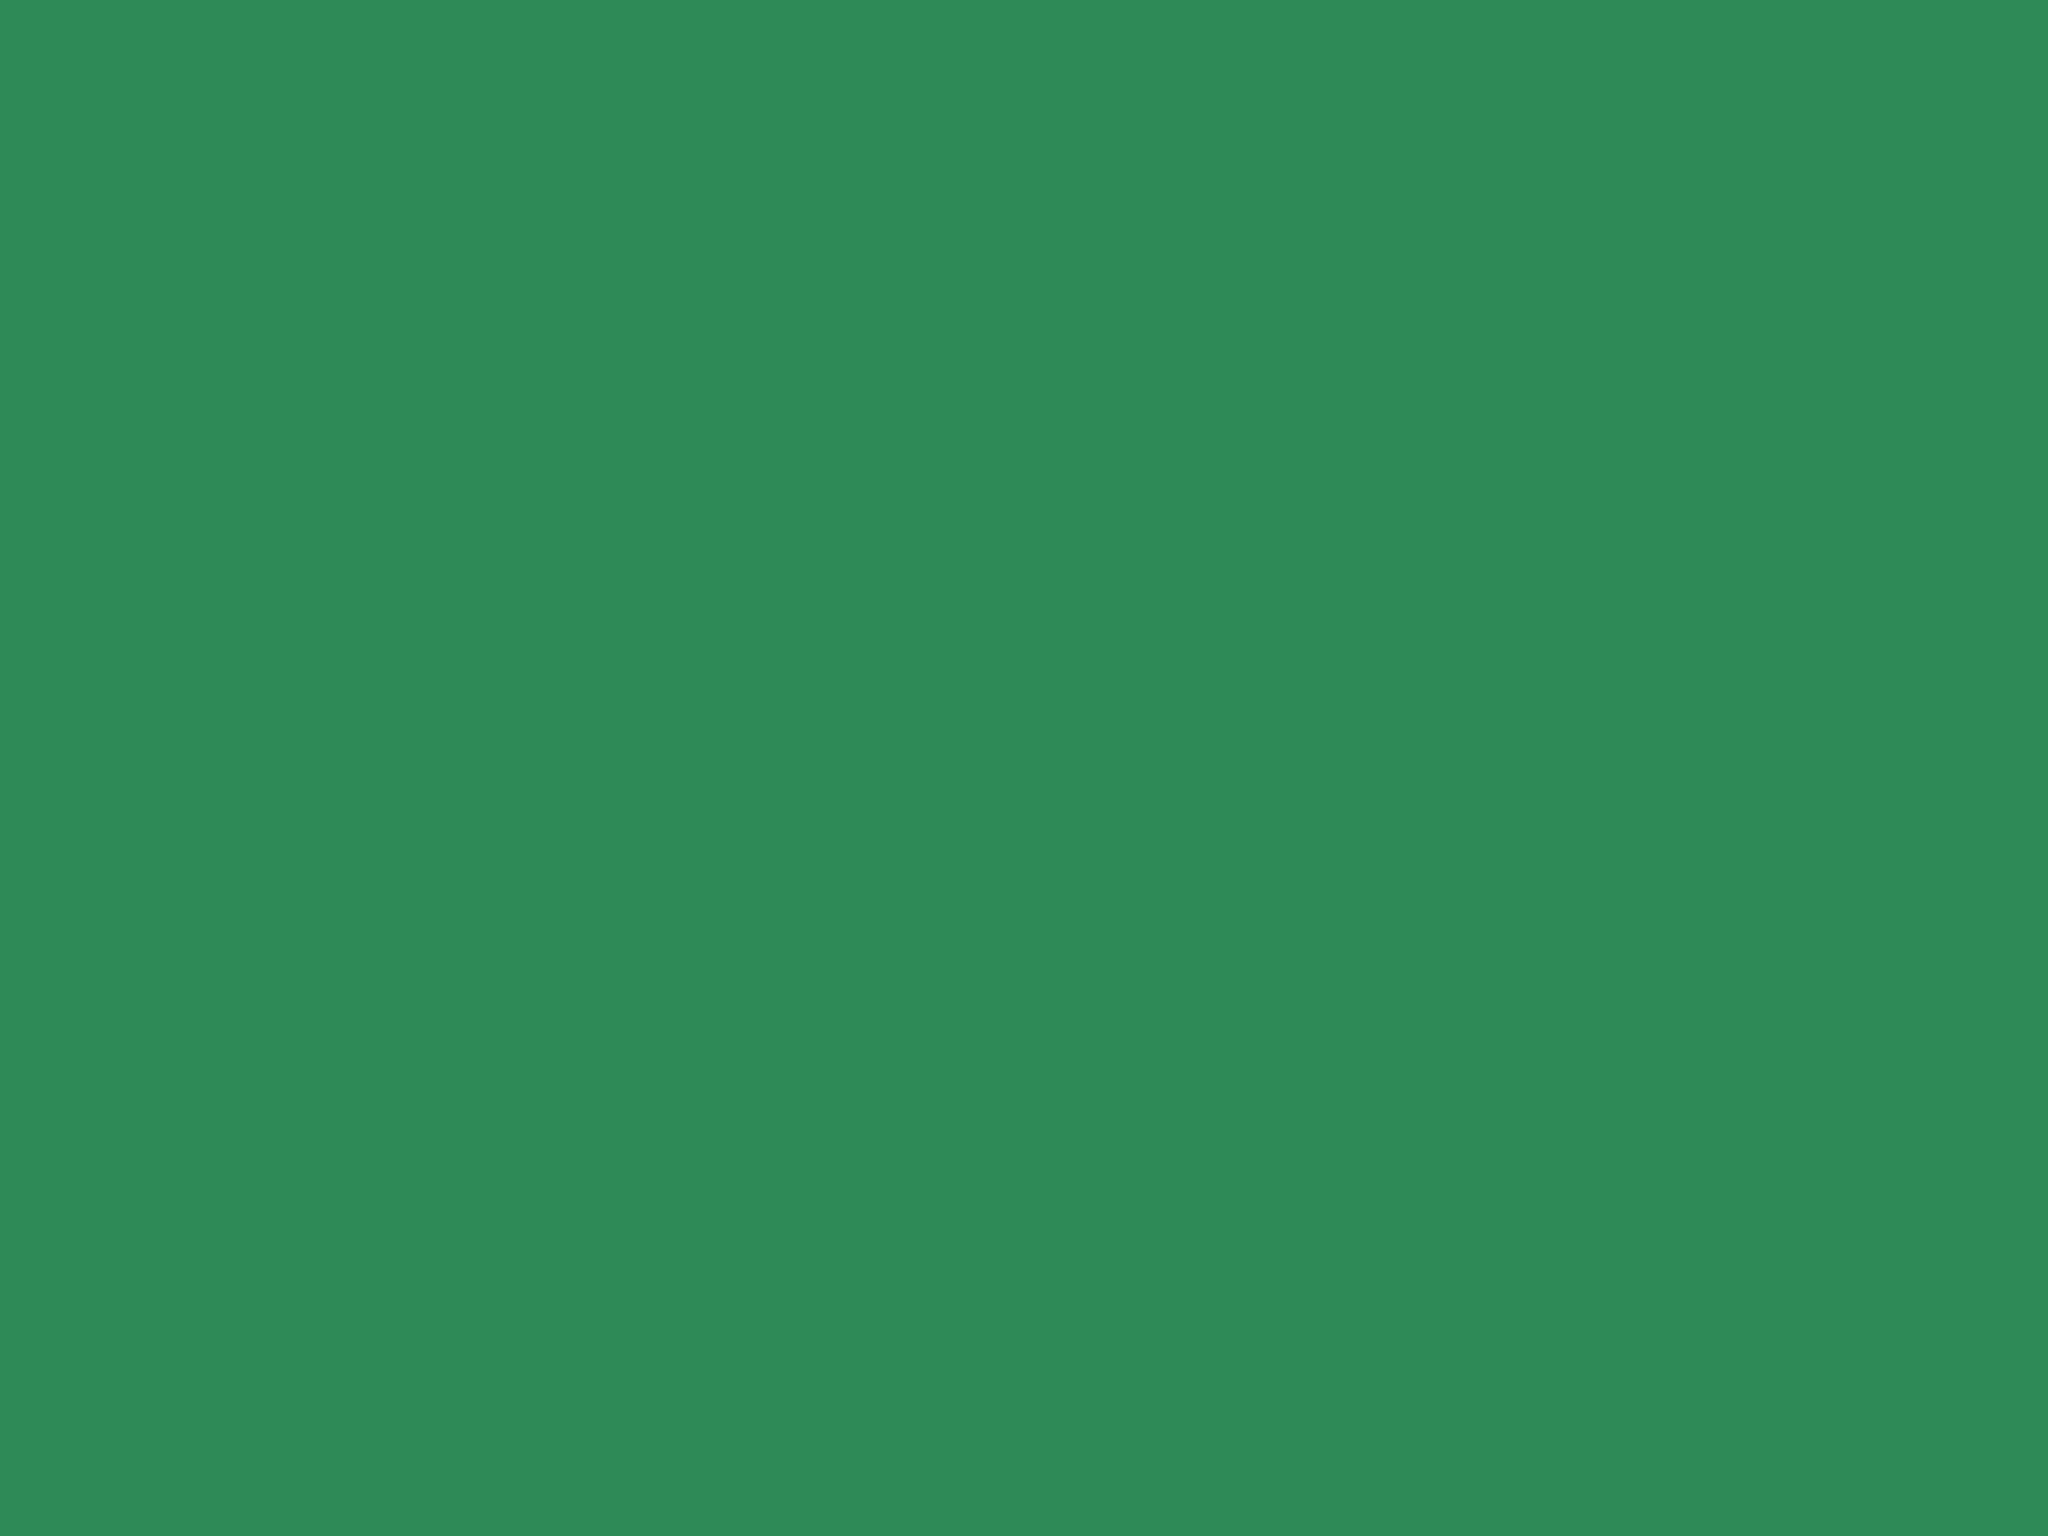 2048x1536 Sea Green Solid Color Background